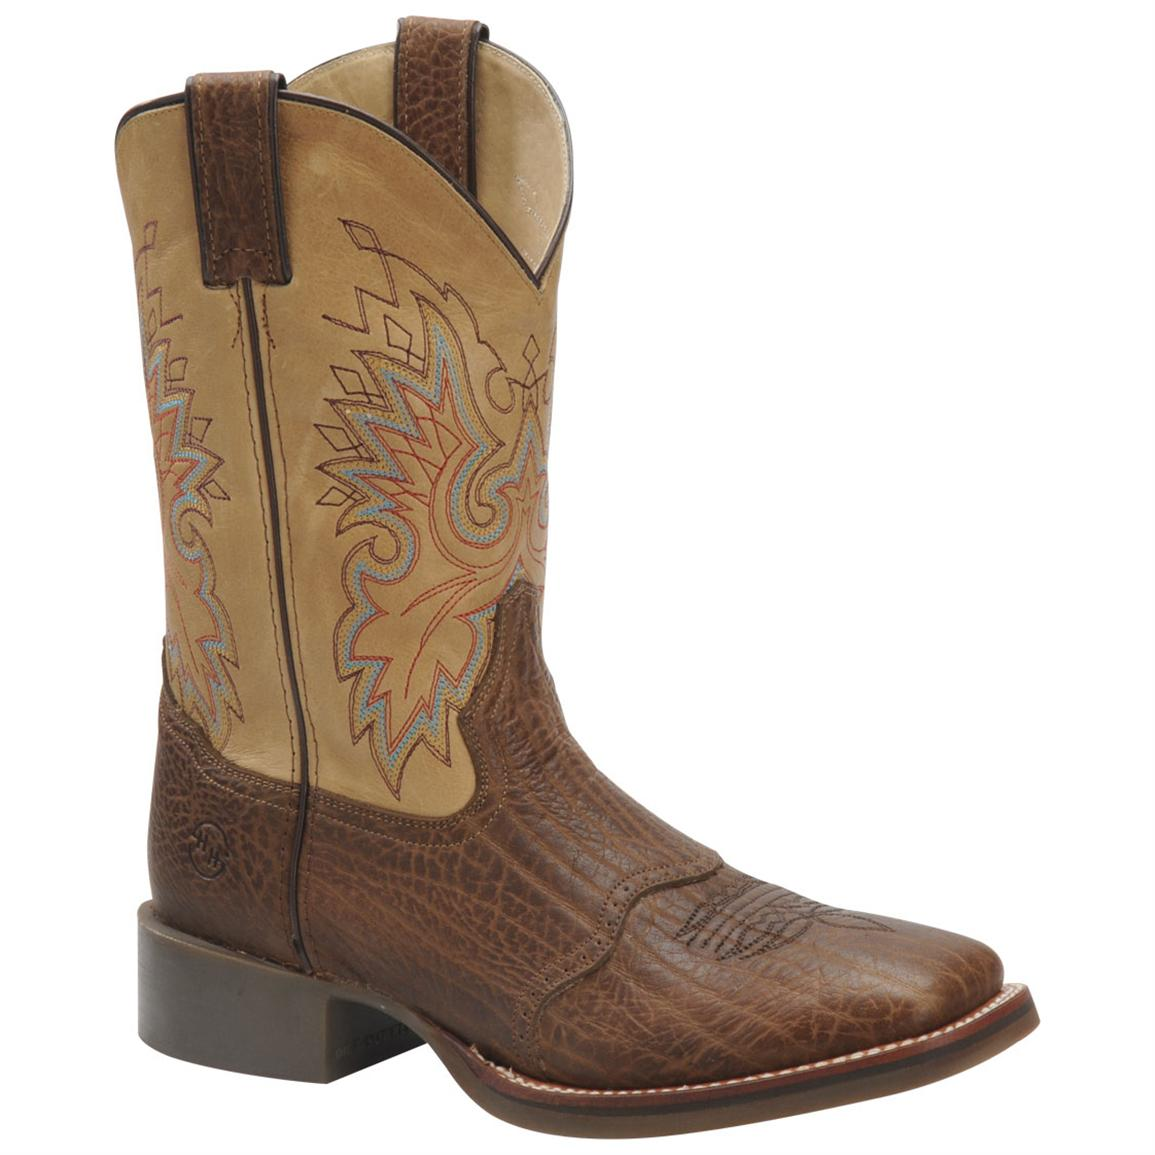 11 inch Men's Double H® Wide Square Toe Roper Cowboy Boots